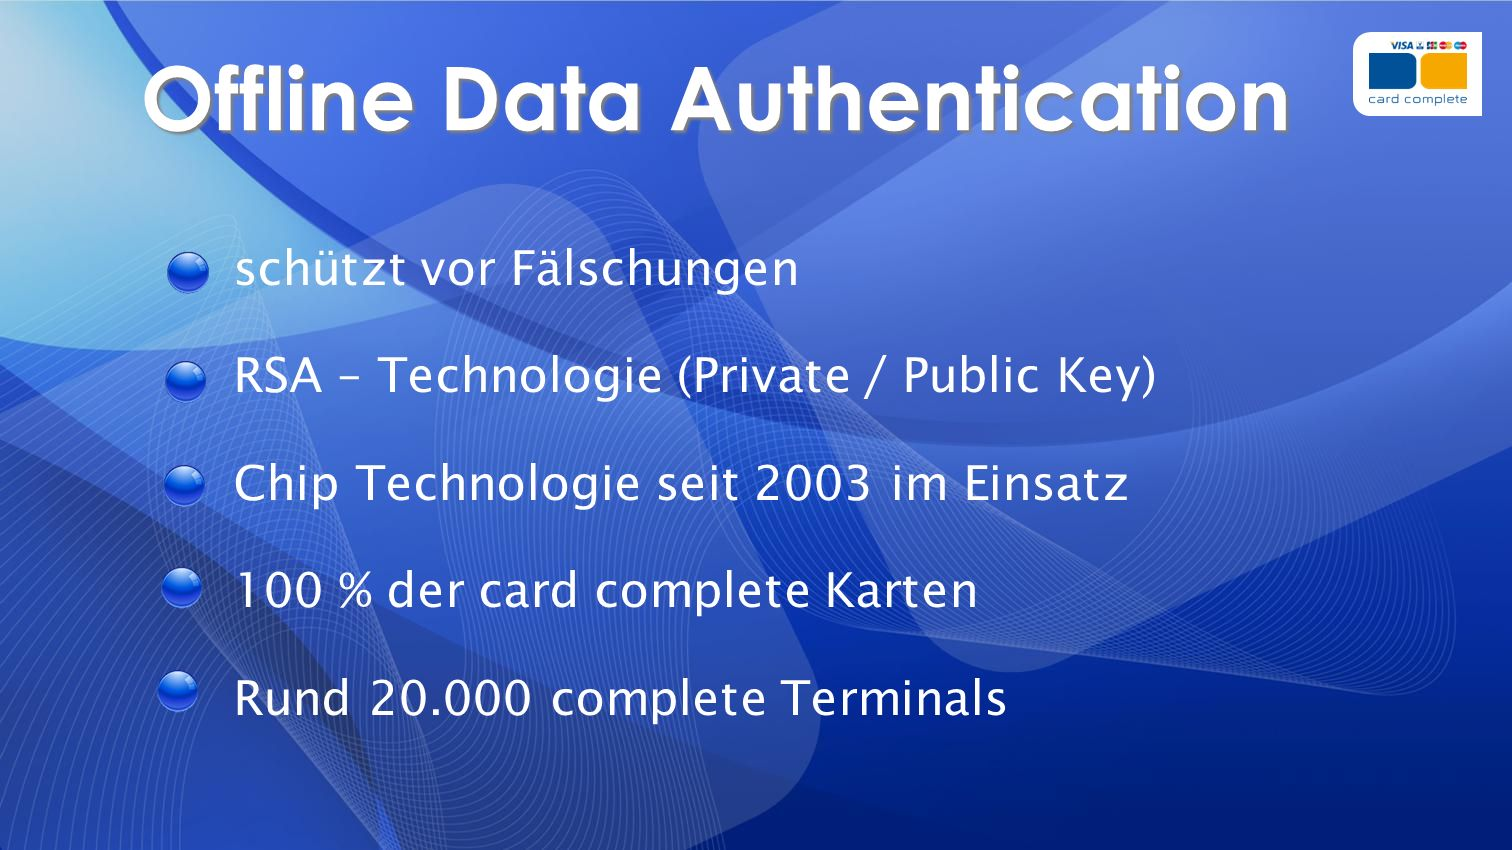 Offline Data Authentication